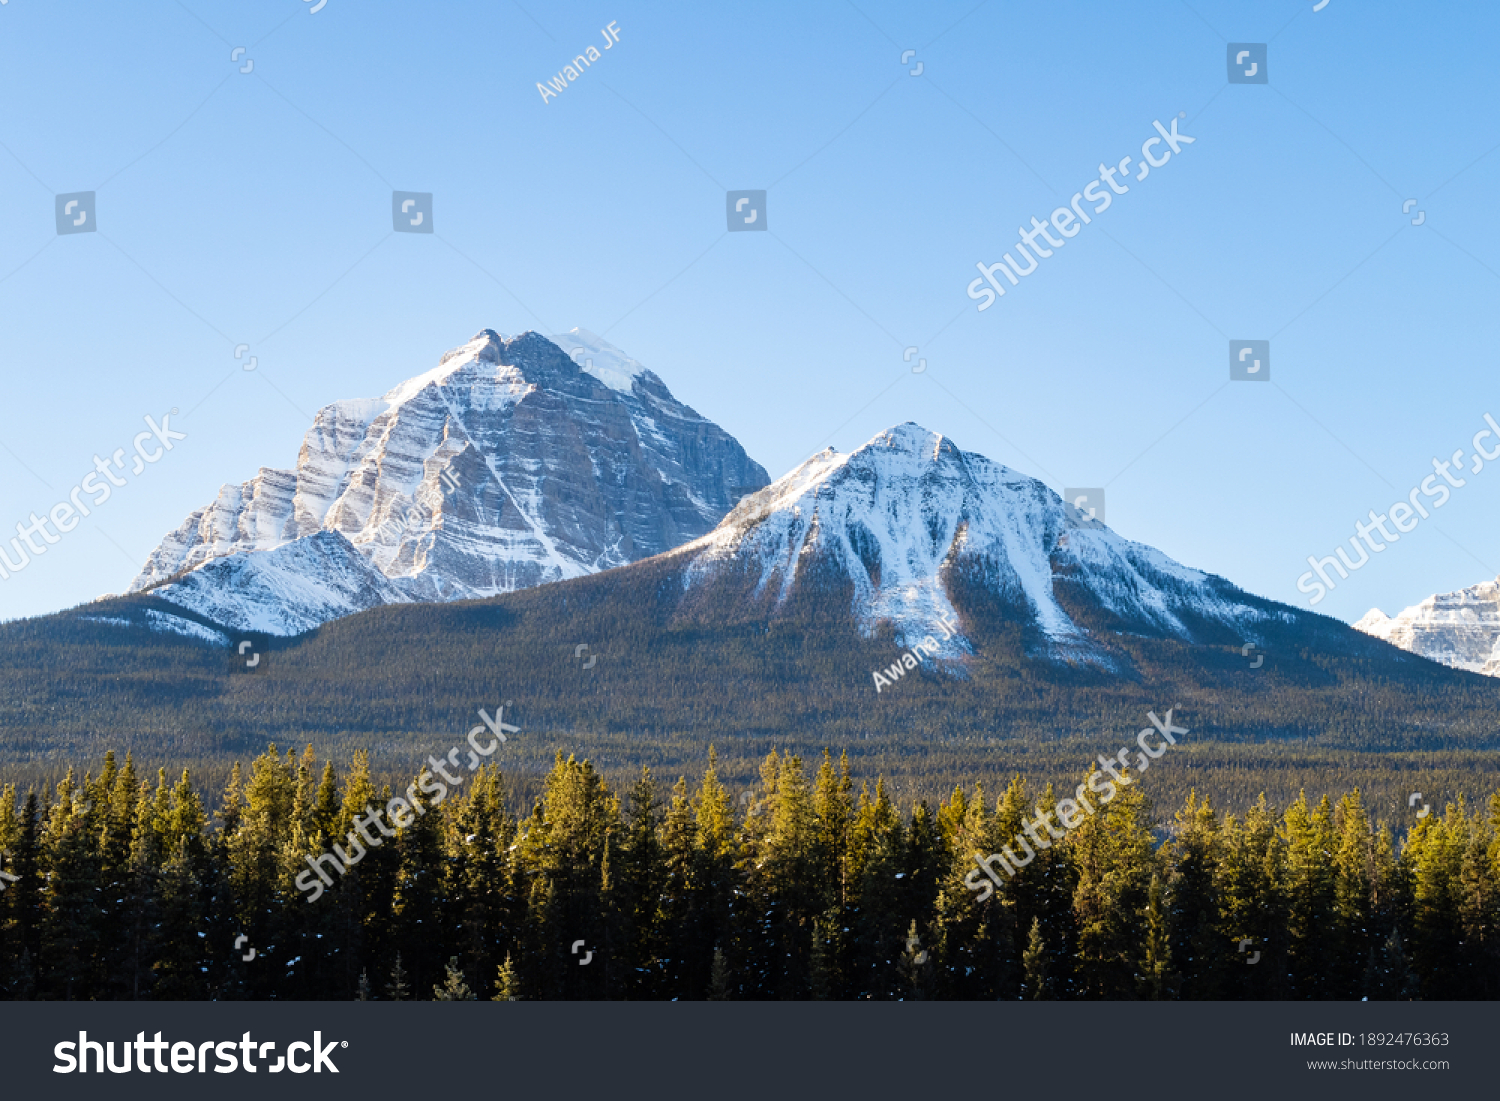 stock-photo-mountain-view-at-morant-s-cu